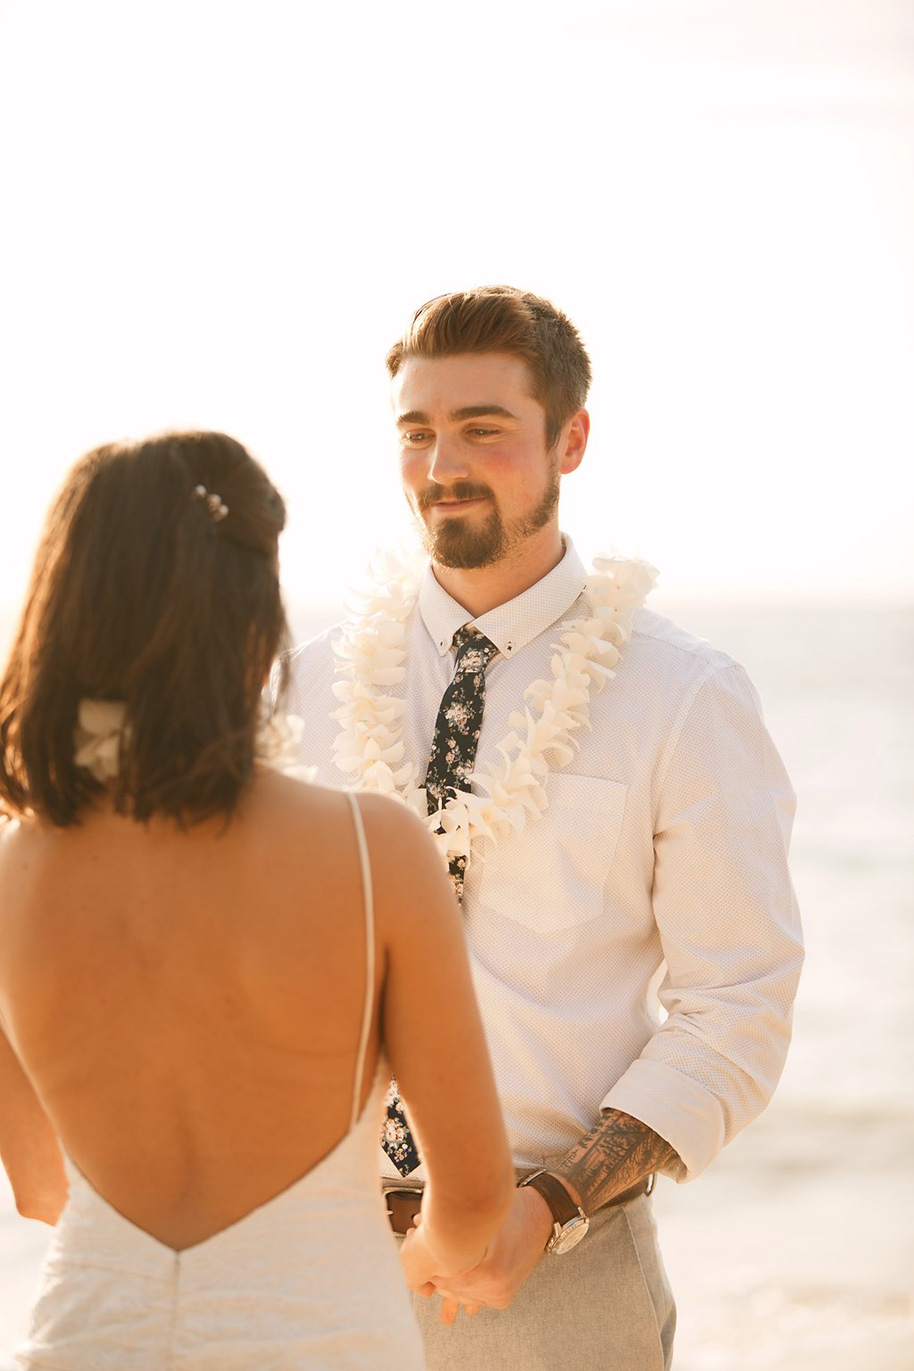 Maui-Beach-Wedding-070616-10.jpg